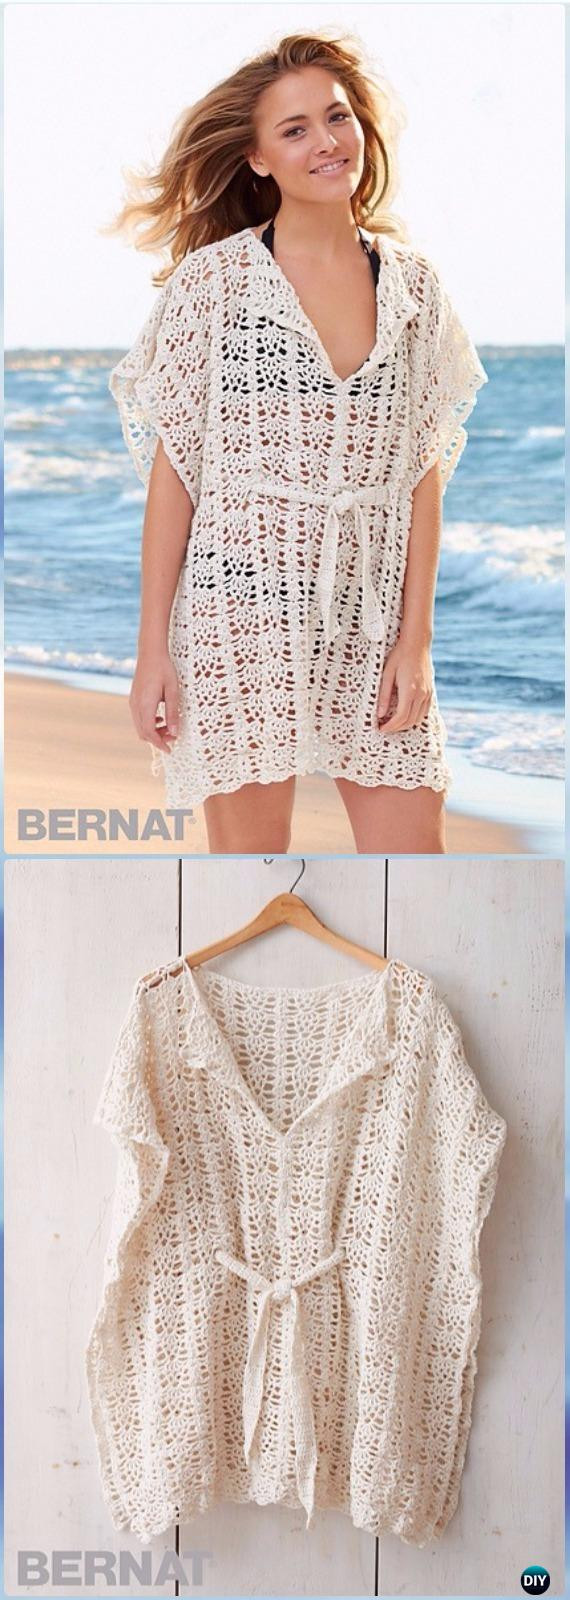 Luxury Crochet Beach Cover Up Free Patterns Women Summer top Crochet Beach Cover Ups Patterns Of Beautiful 40 Models Crochet Beach Cover Ups Patterns